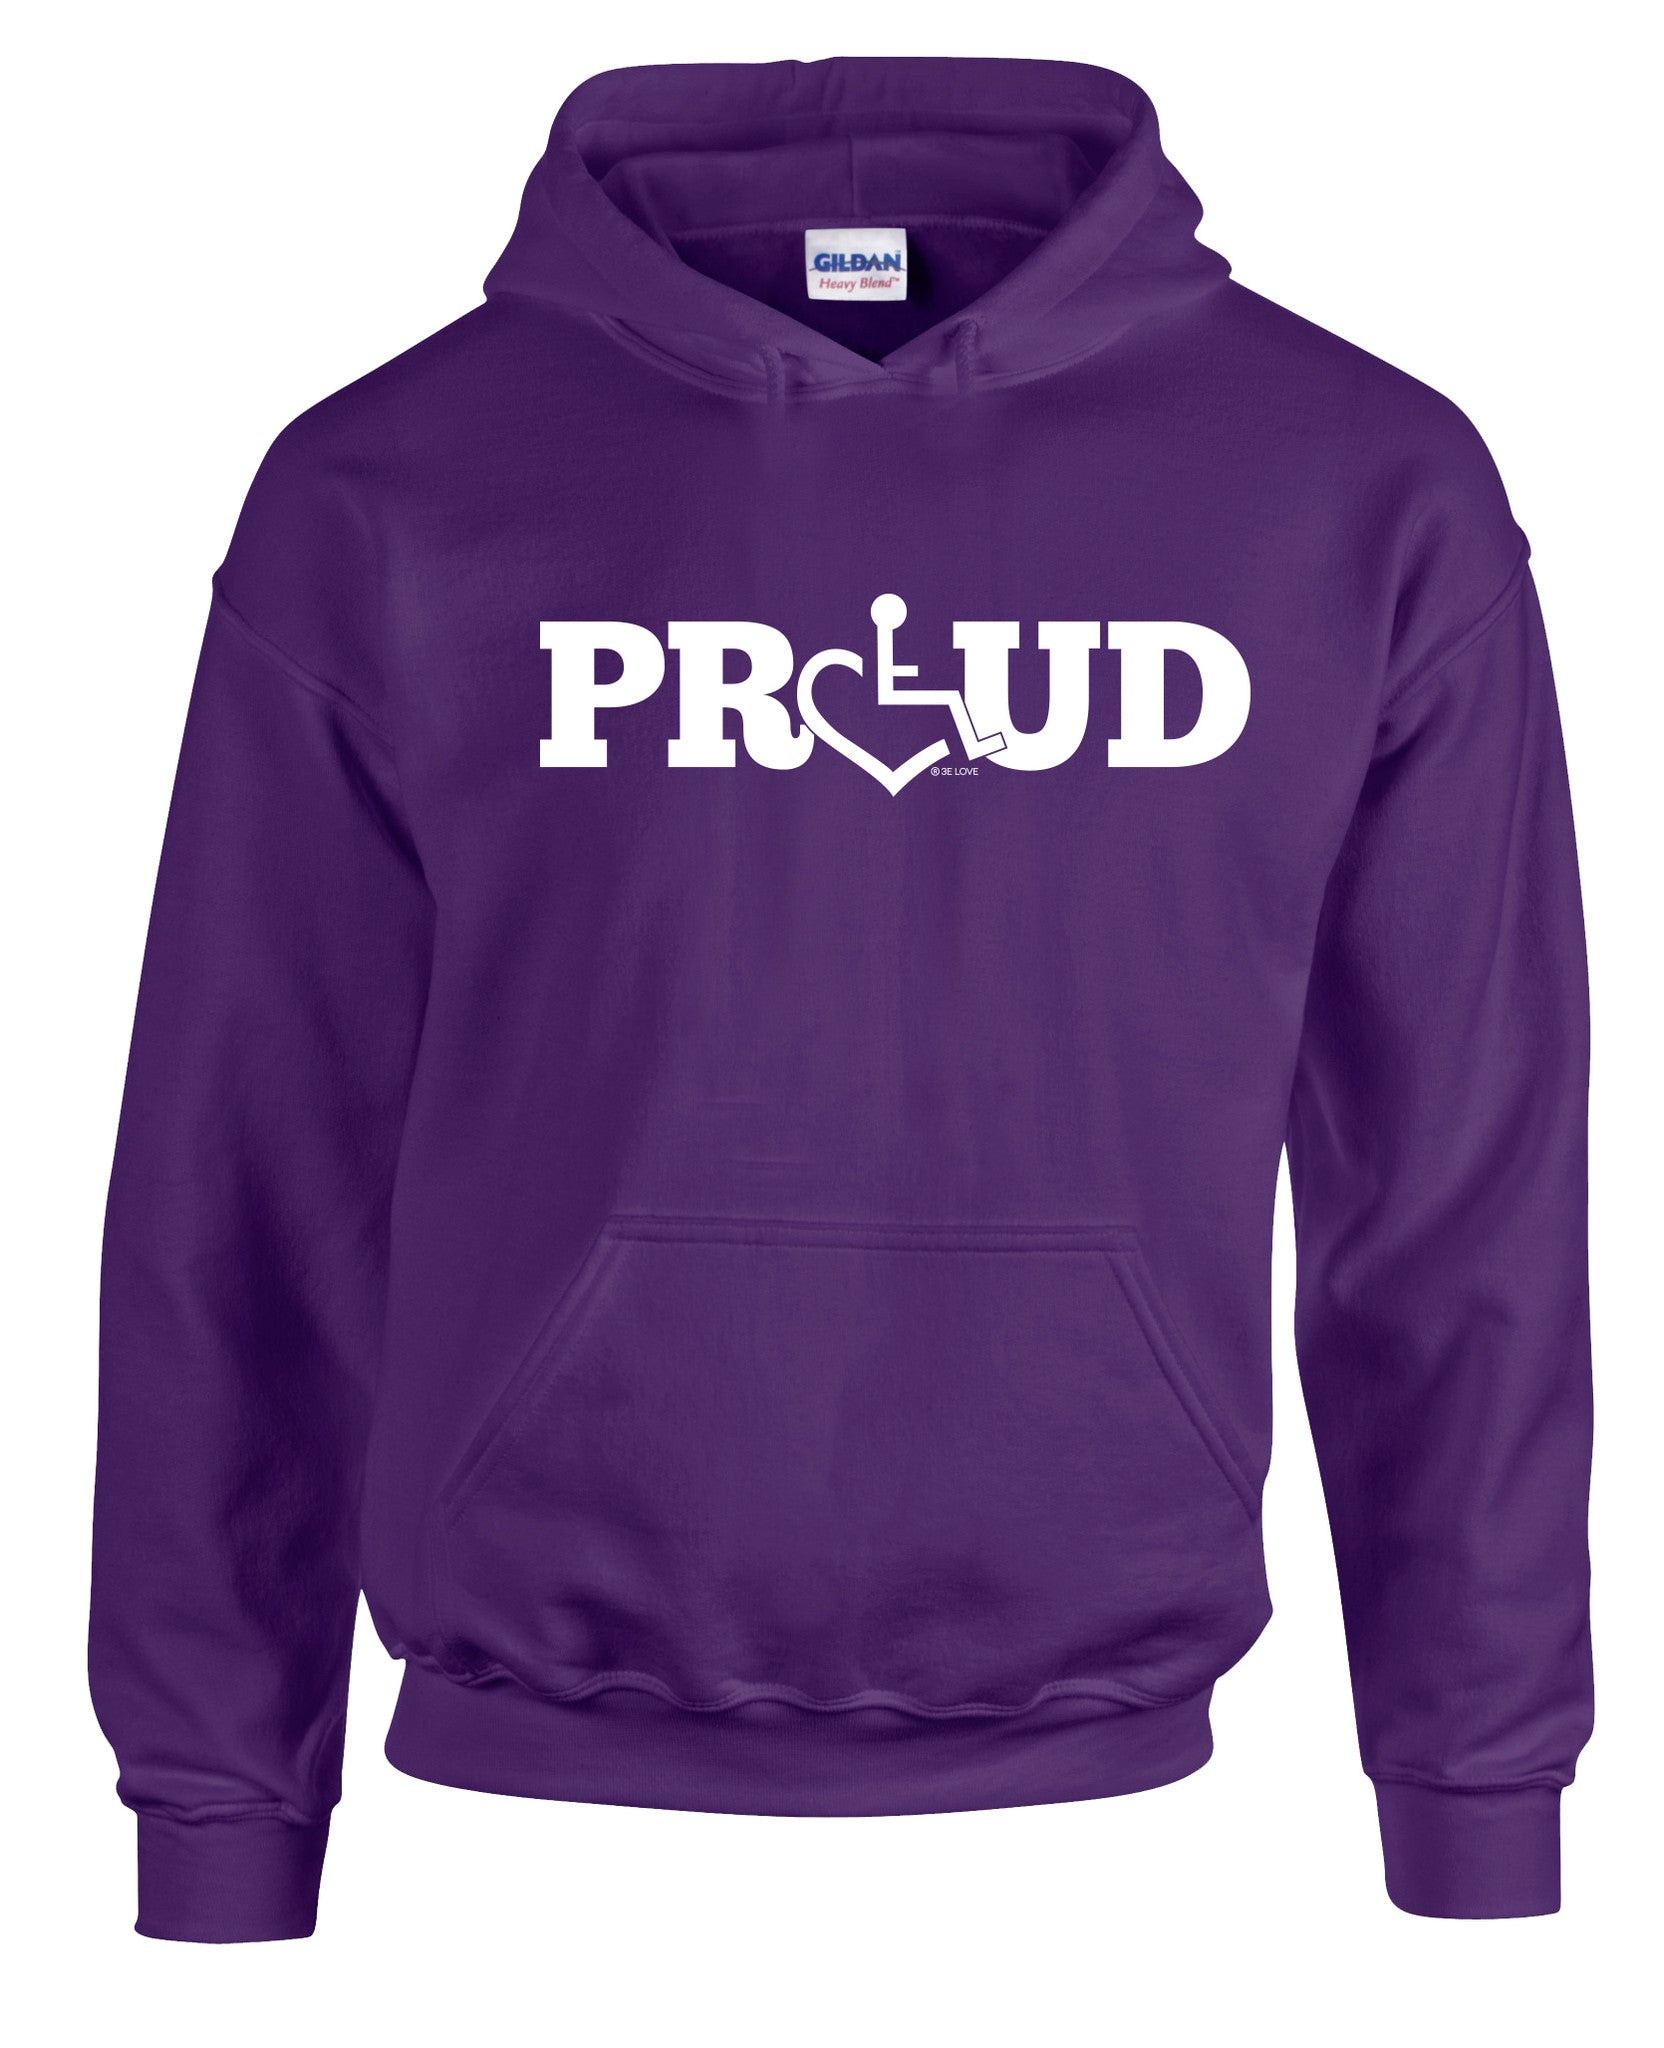 PROUD Hooded Pullover